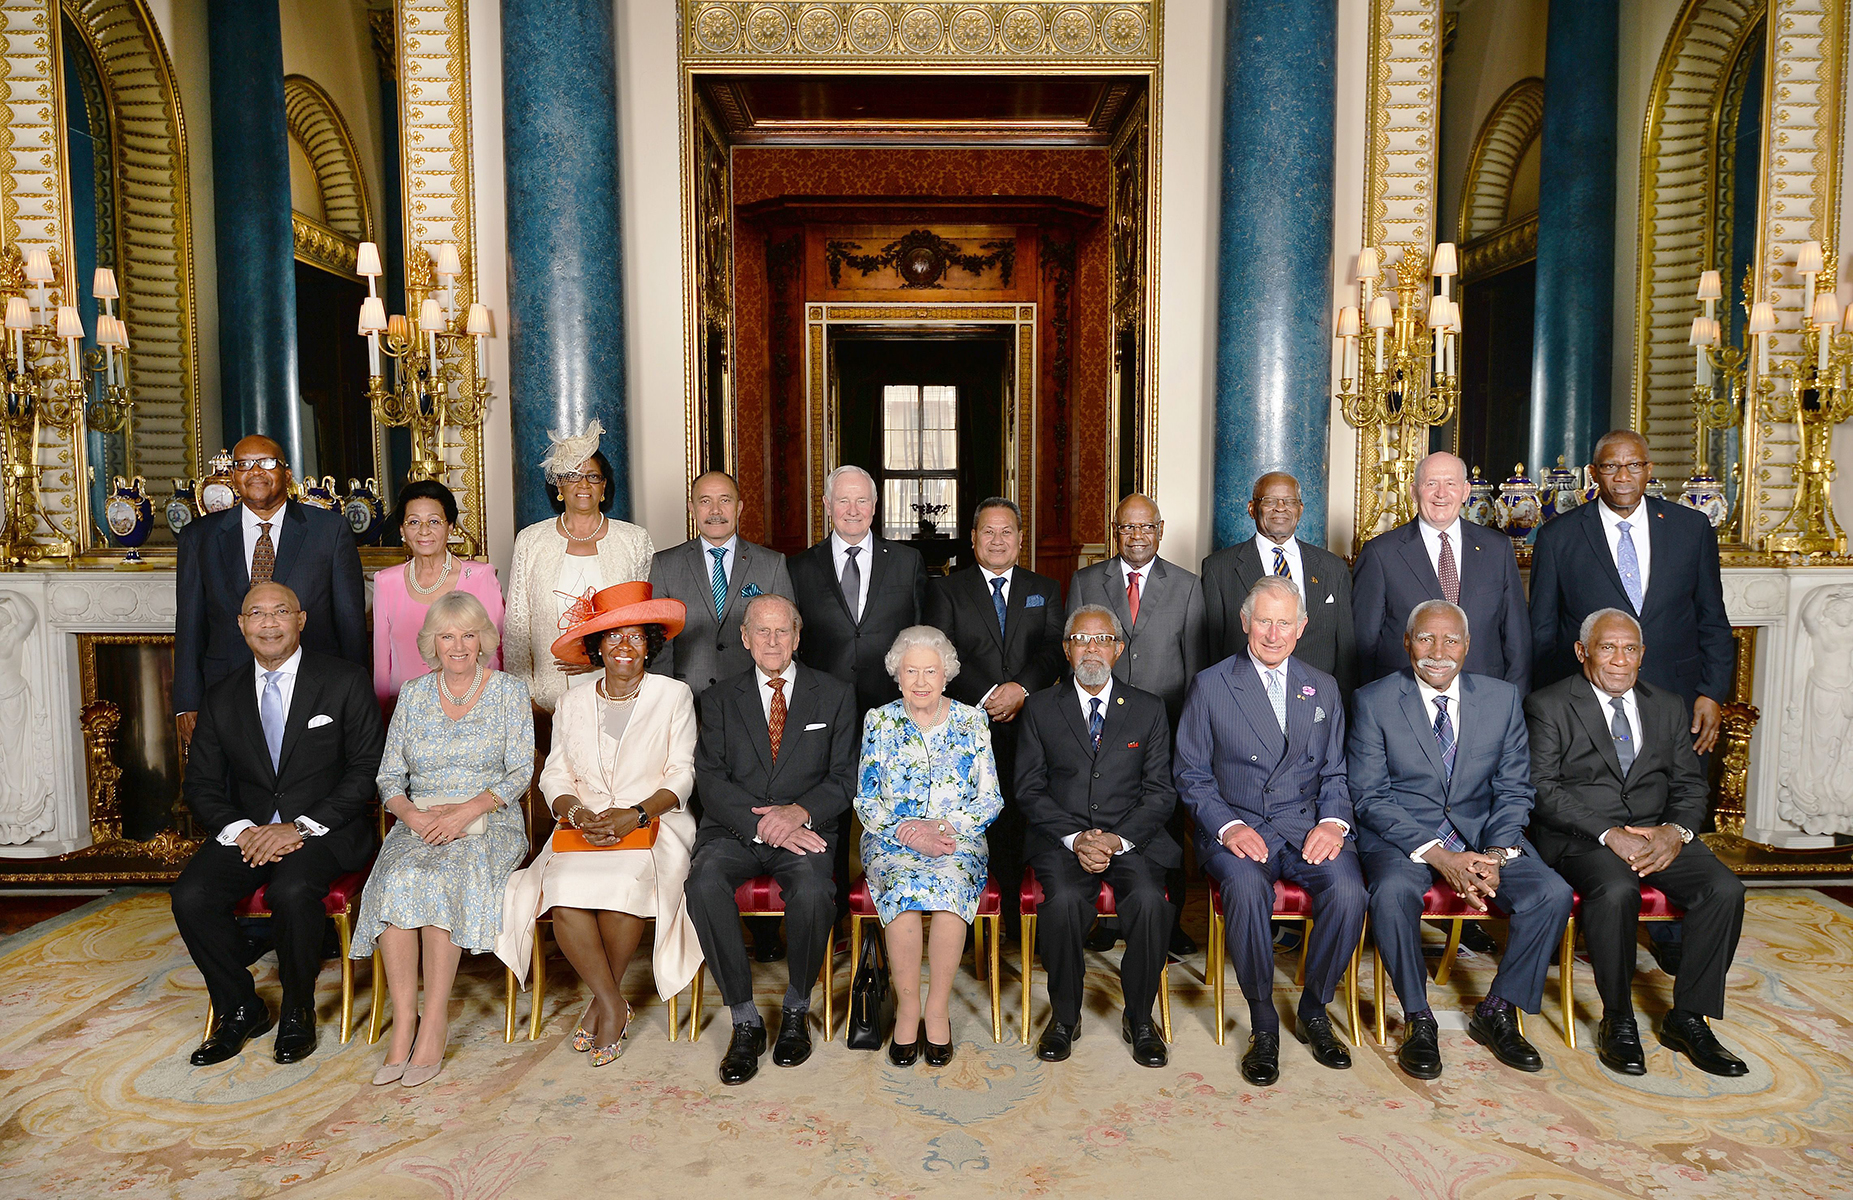 A luncheon was hosted by Her Majesty The Queen in the presence of the governors general of Commonwealth realms.